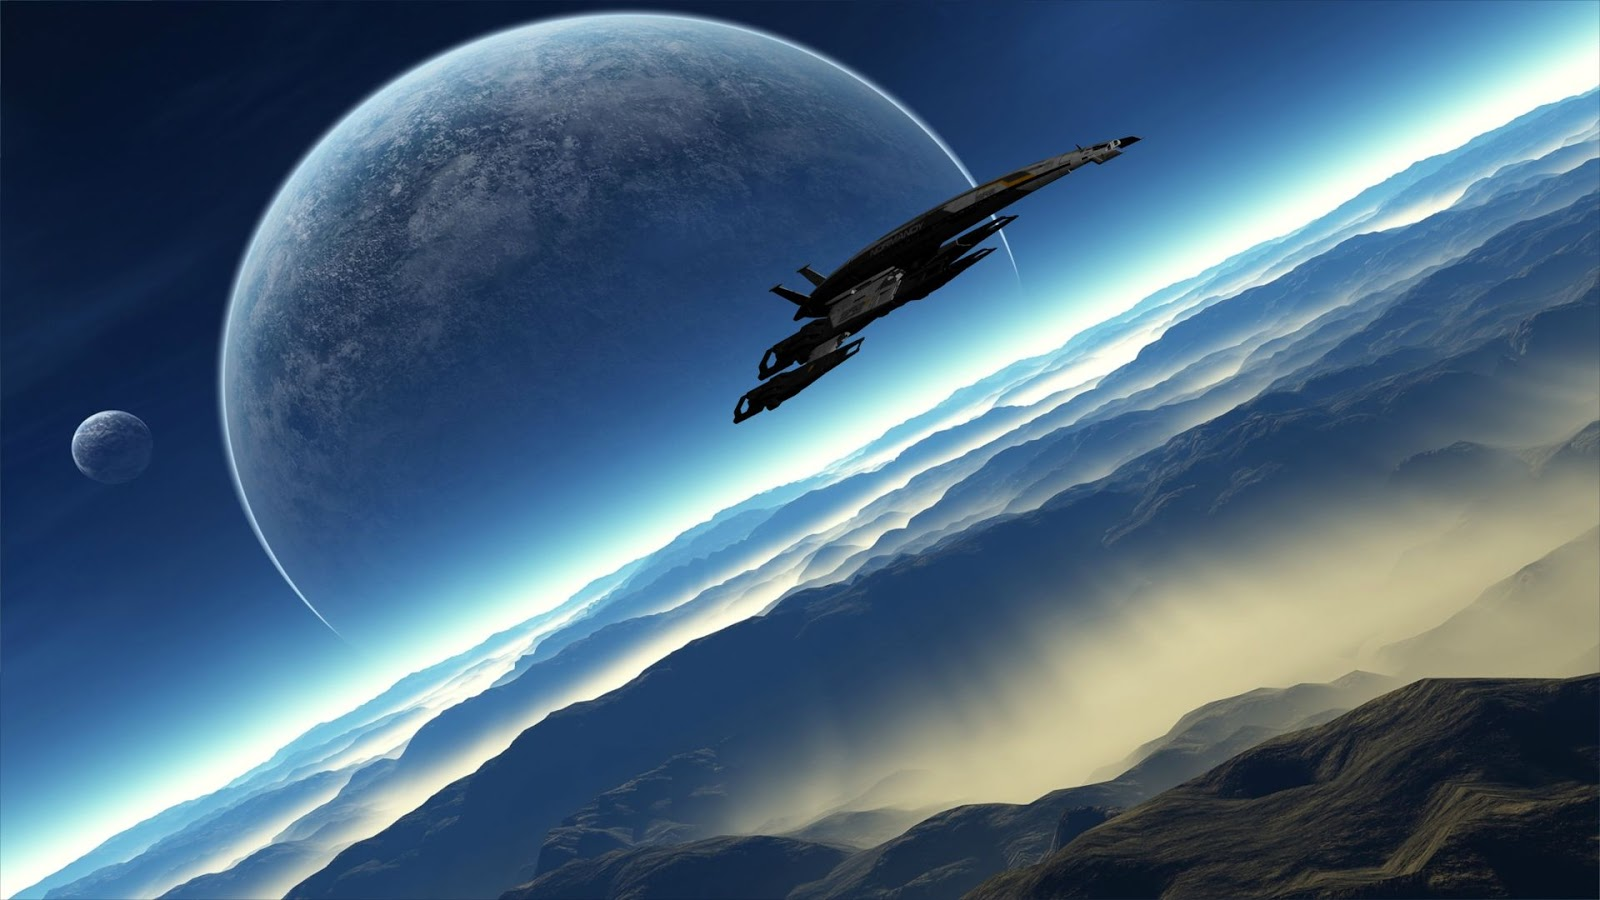 Spaceship Wallpapers for Phones